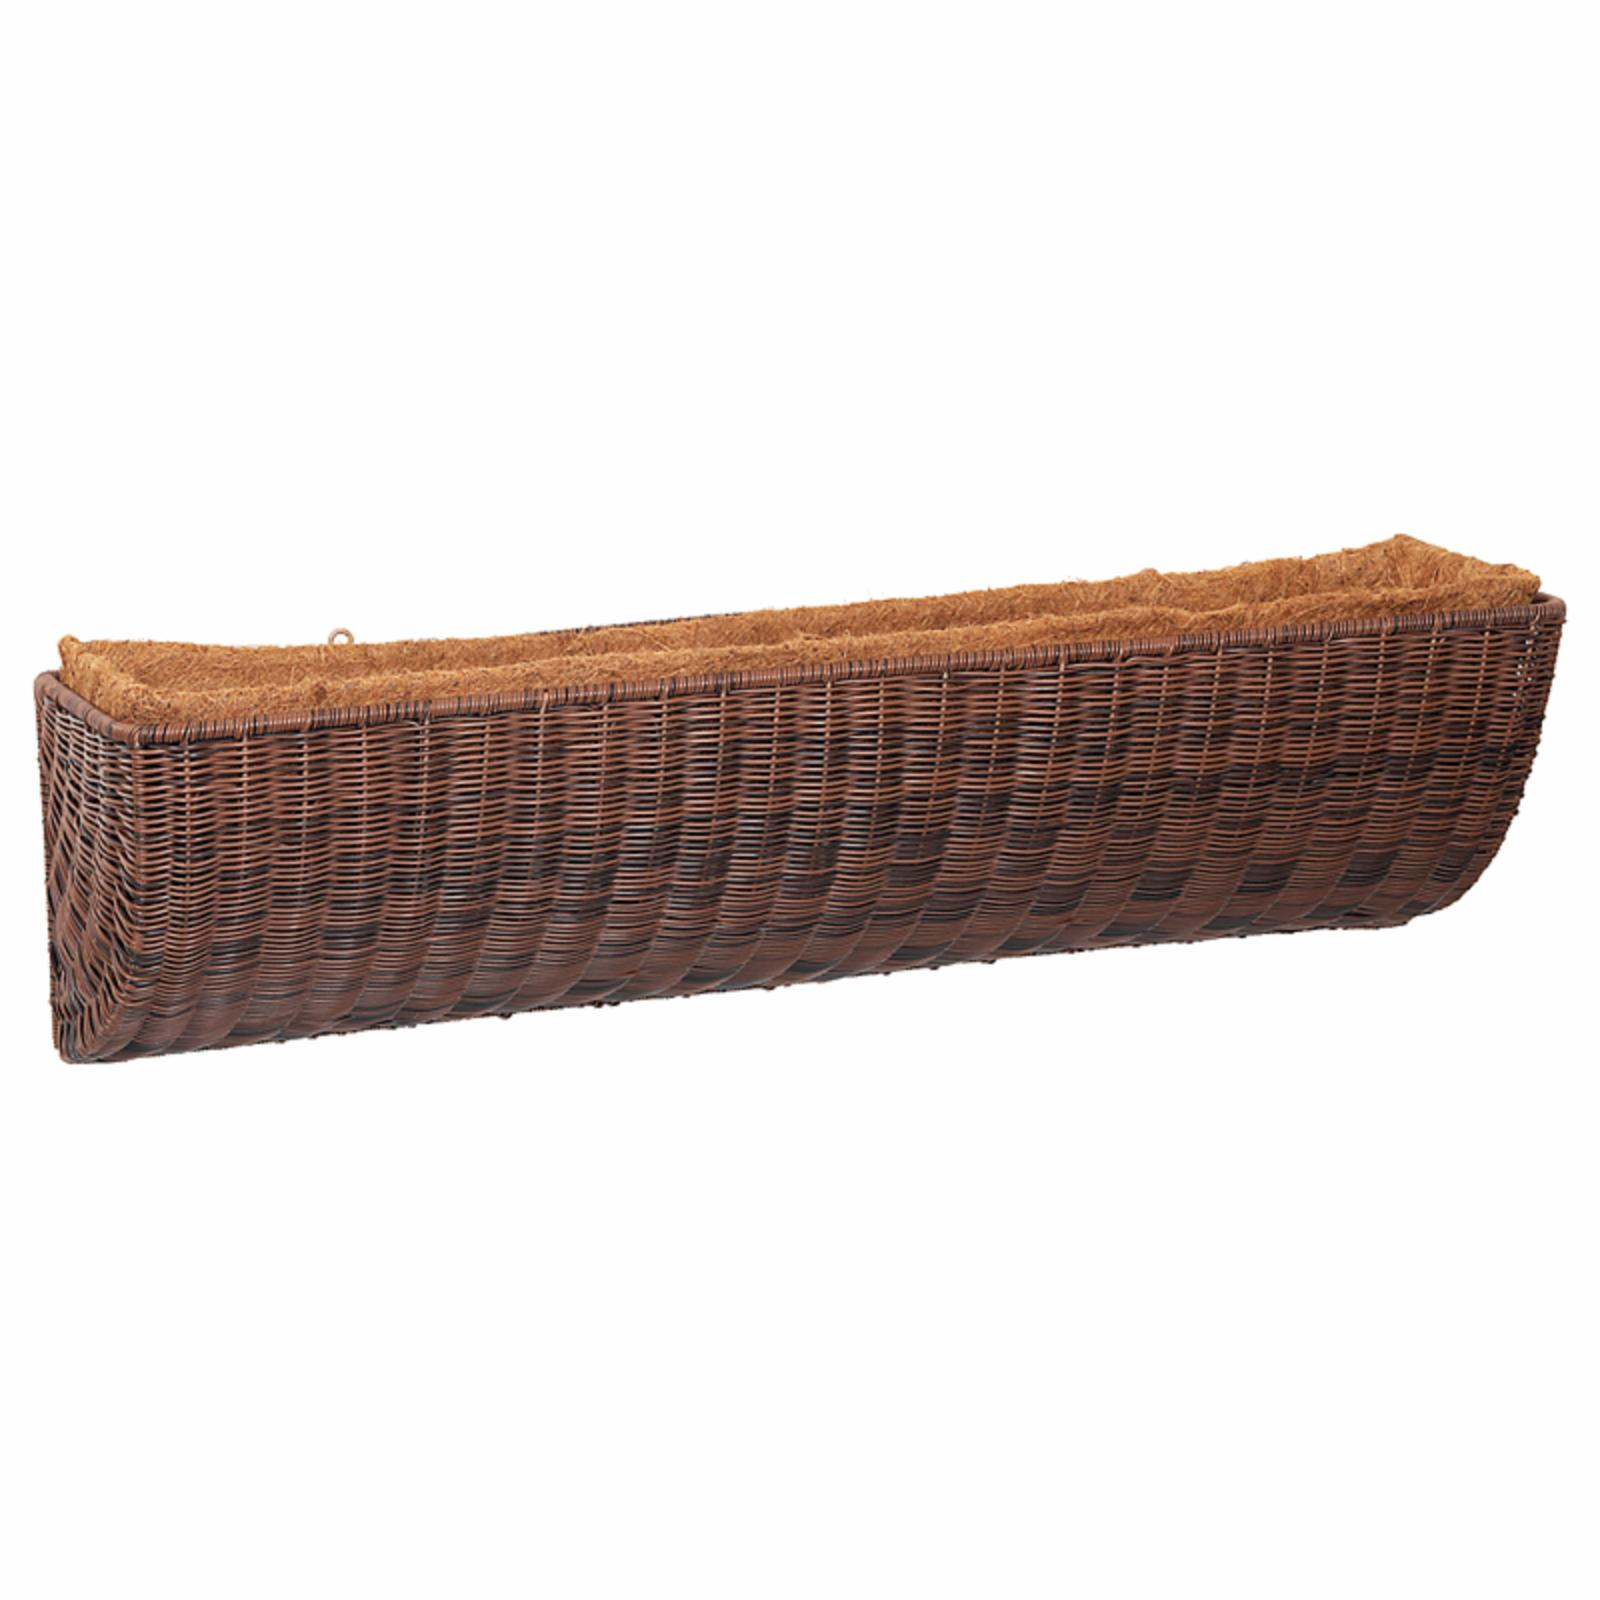 DMC Resin Wicker Wall and Railing Planters Antique Brown